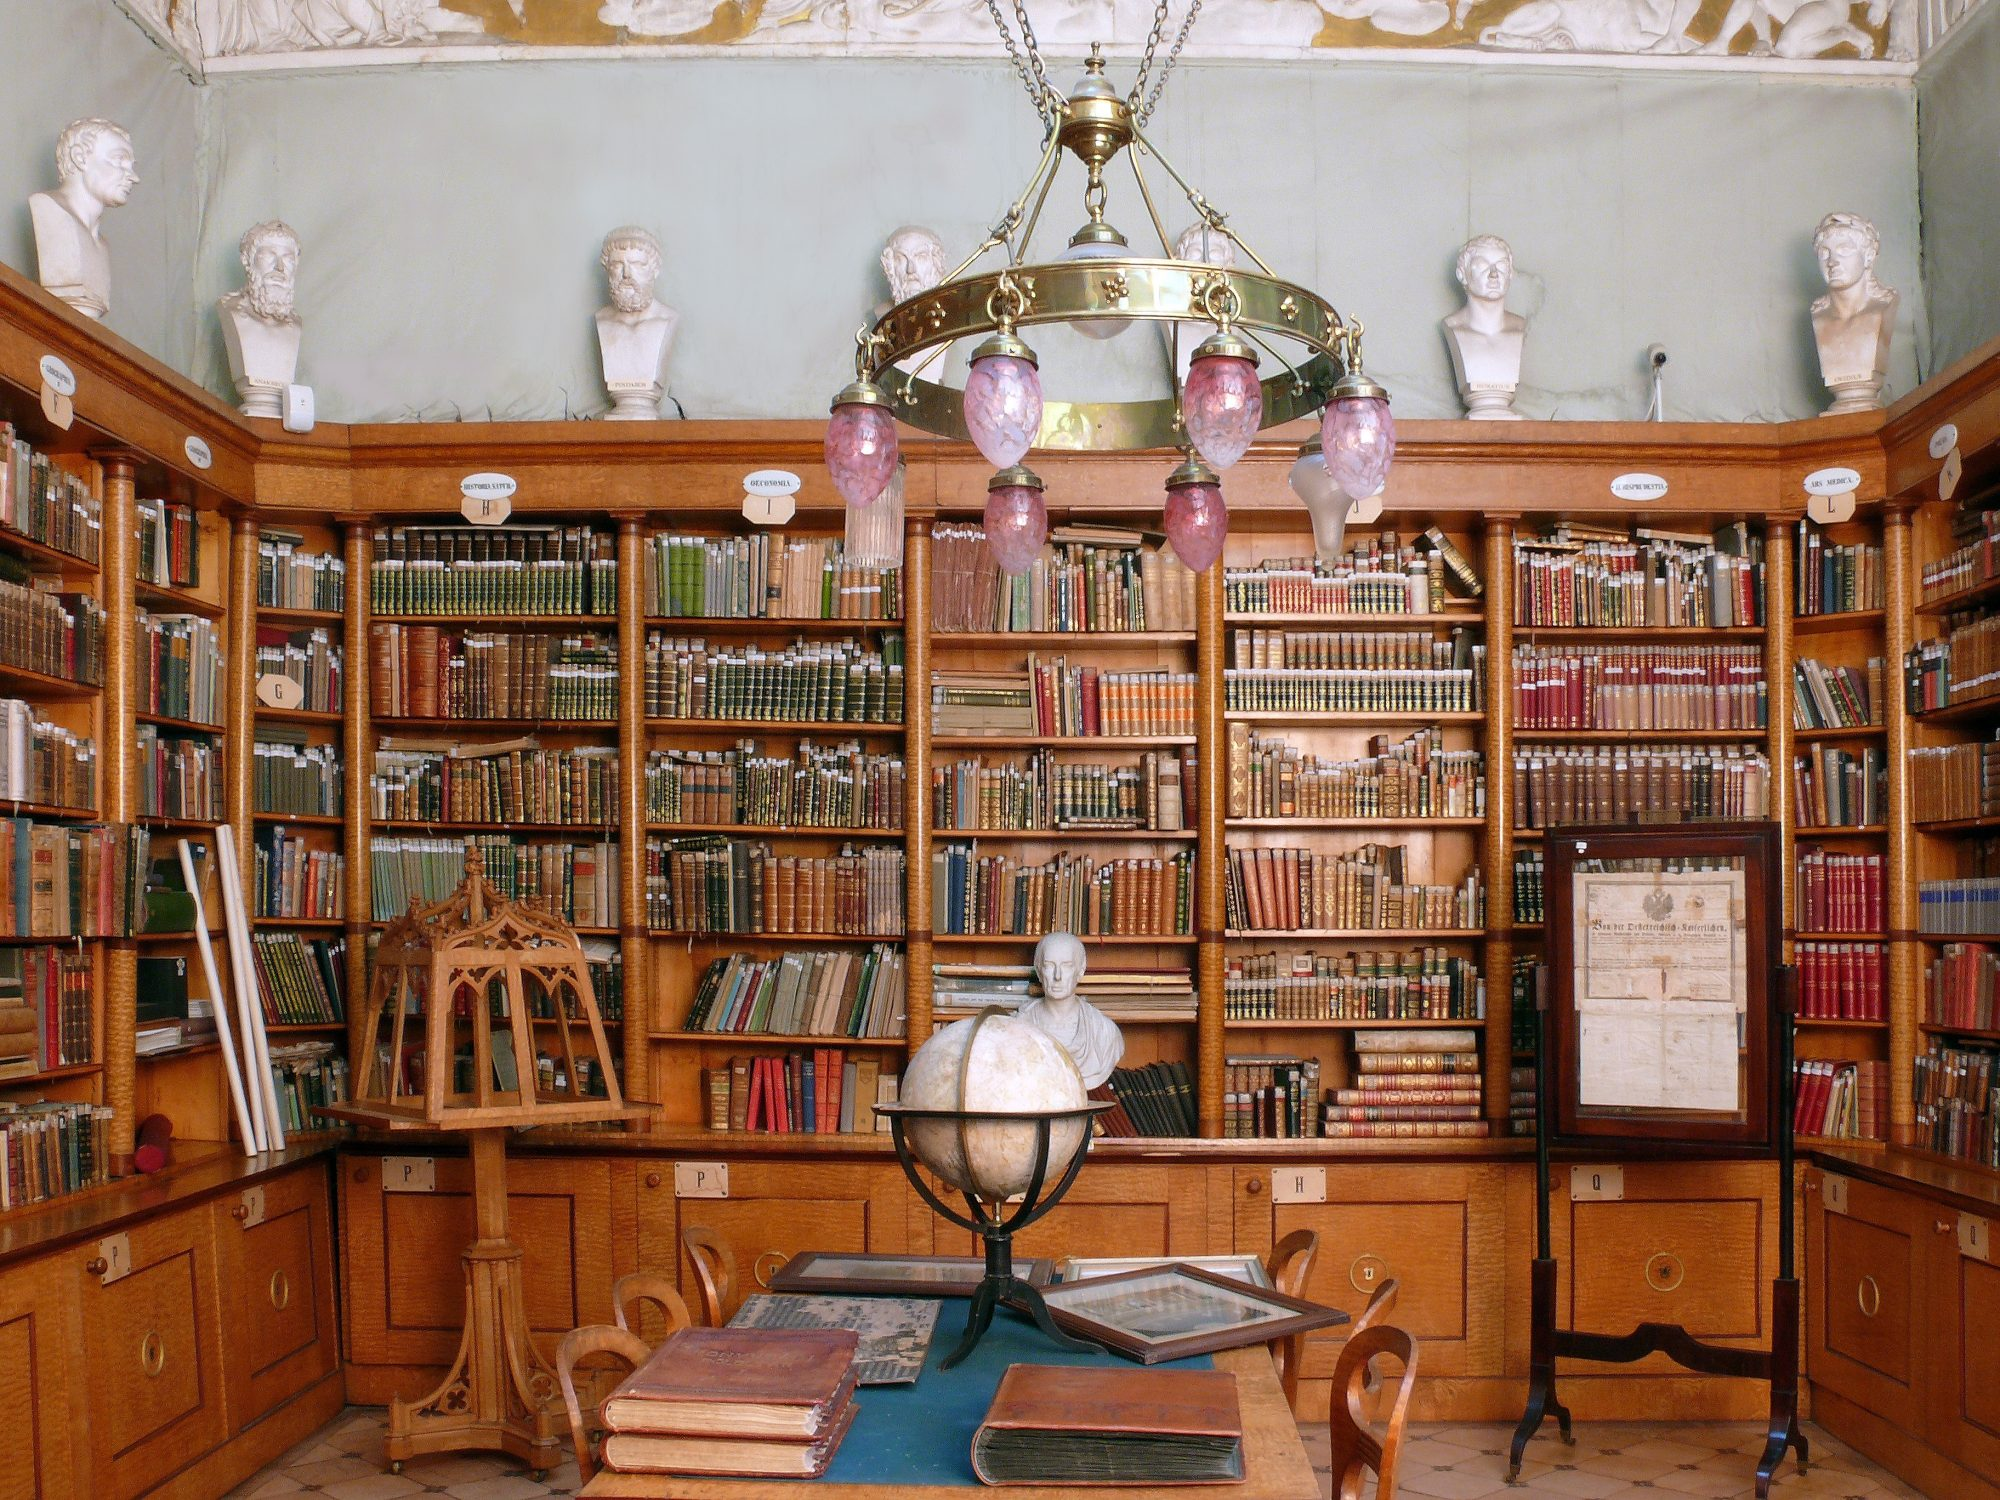 Chateau Topoľčianky - a library (photo by Peter Fratrič)